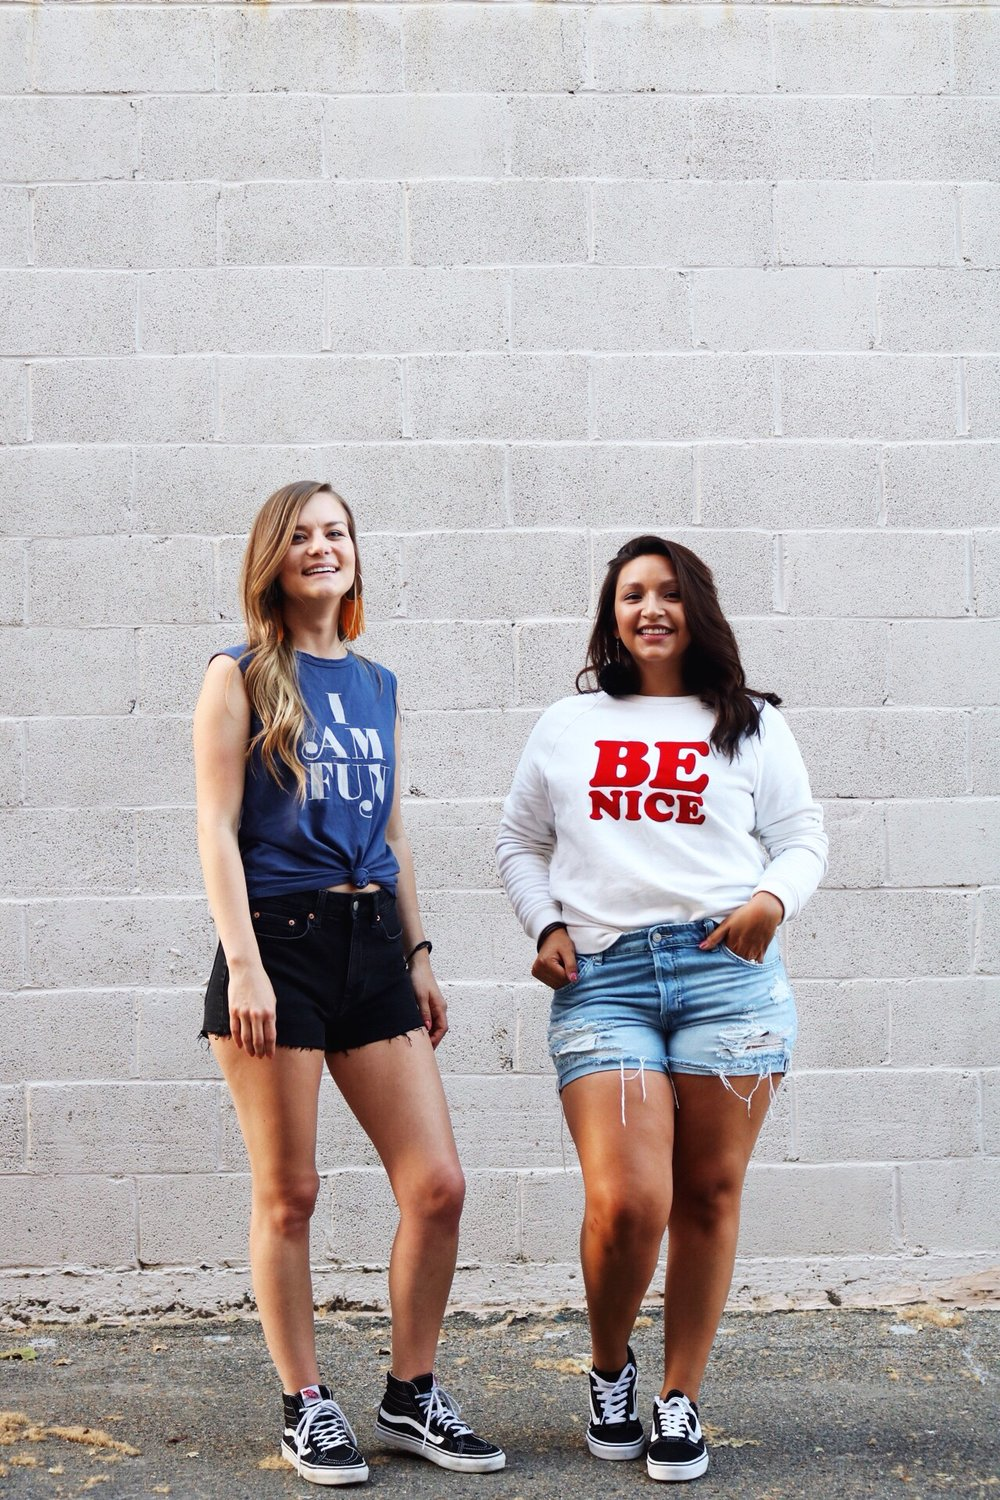 Ban.do Graphic Tees, Black High Top Vans, Confidence, Self-Love, BFF's Laughing, Yellow Fringe Earrings